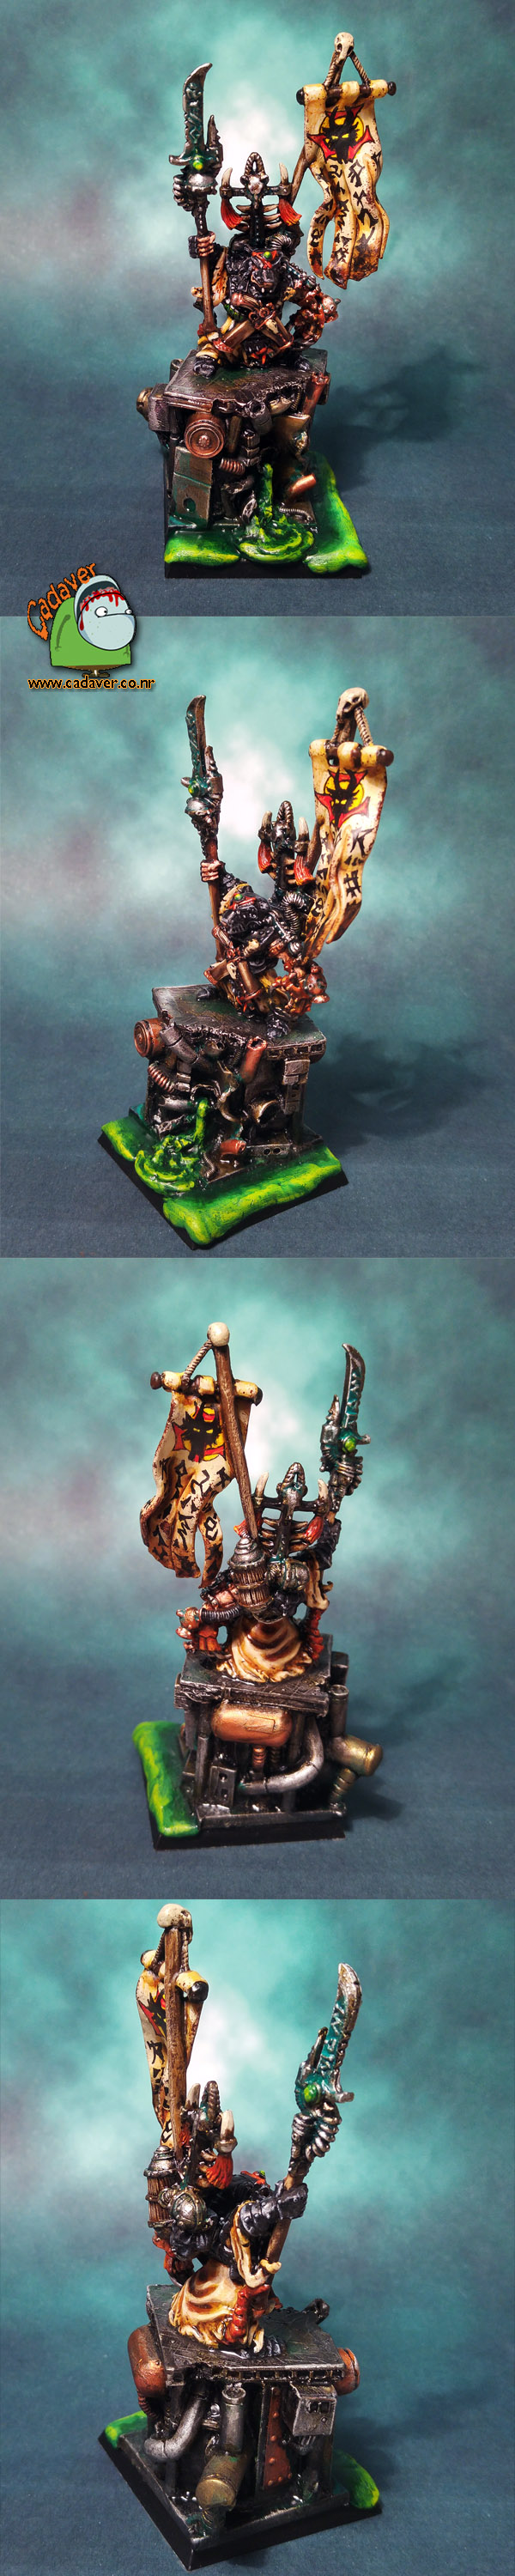 Skaven Chief Warlord Engineer Ikit Claw